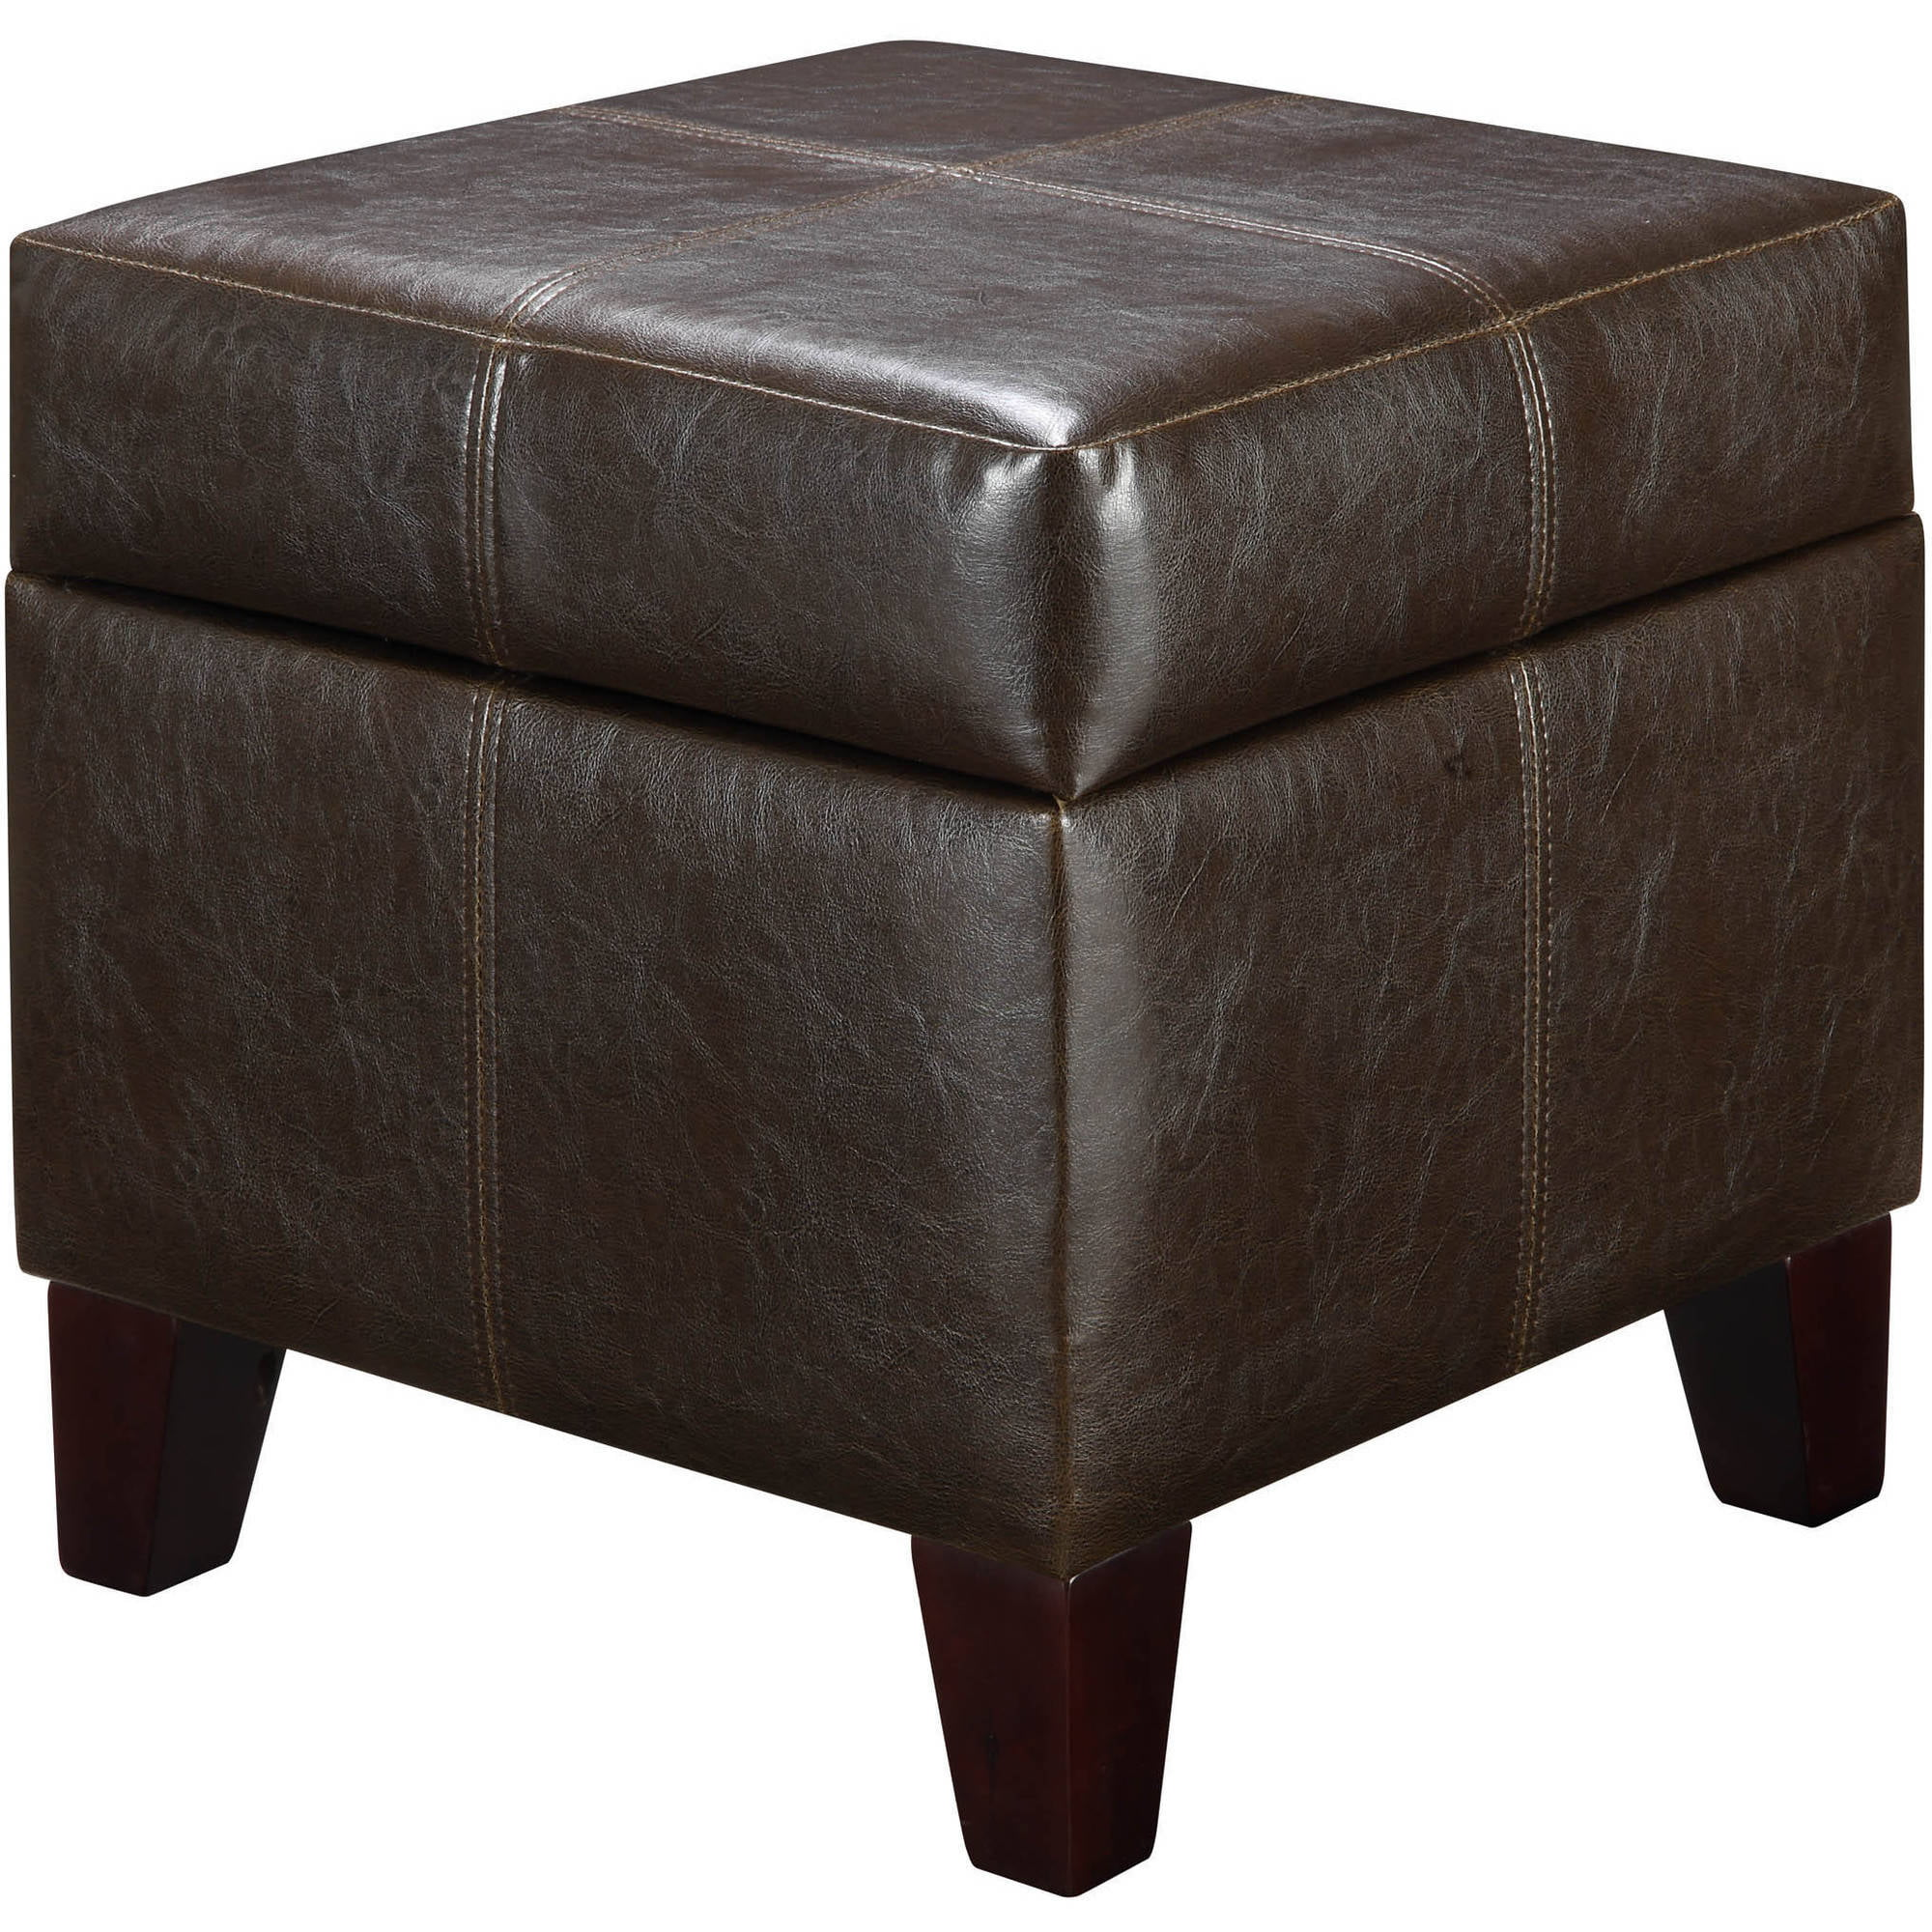 Strange Better Homes Gardens Faux Leather Storage Ottoman Multiple Colors Caraccident5 Cool Chair Designs And Ideas Caraccident5Info